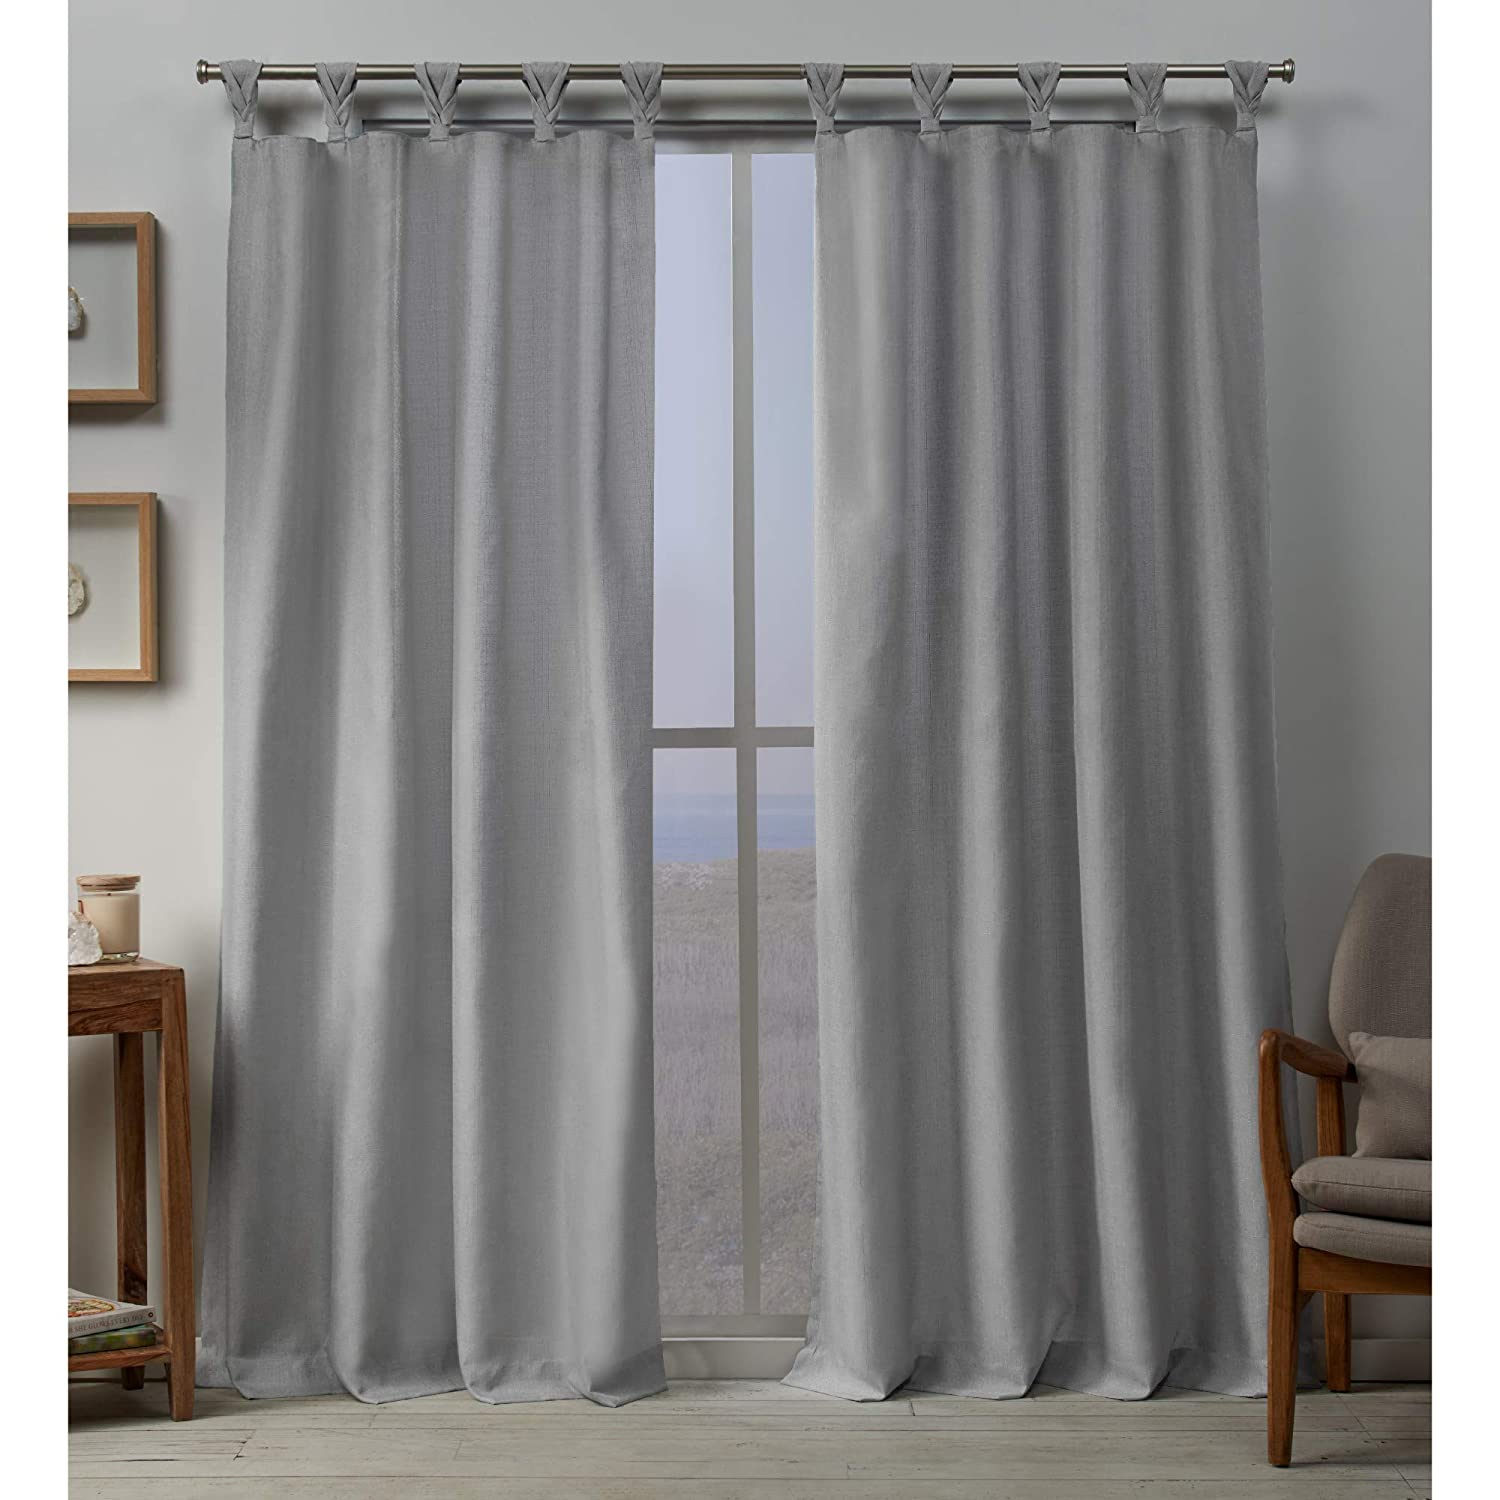 Exclusive Home Curtains Loha Linen Braided Tab Top Curtain Panel Pair, 54x84, Dove Grey